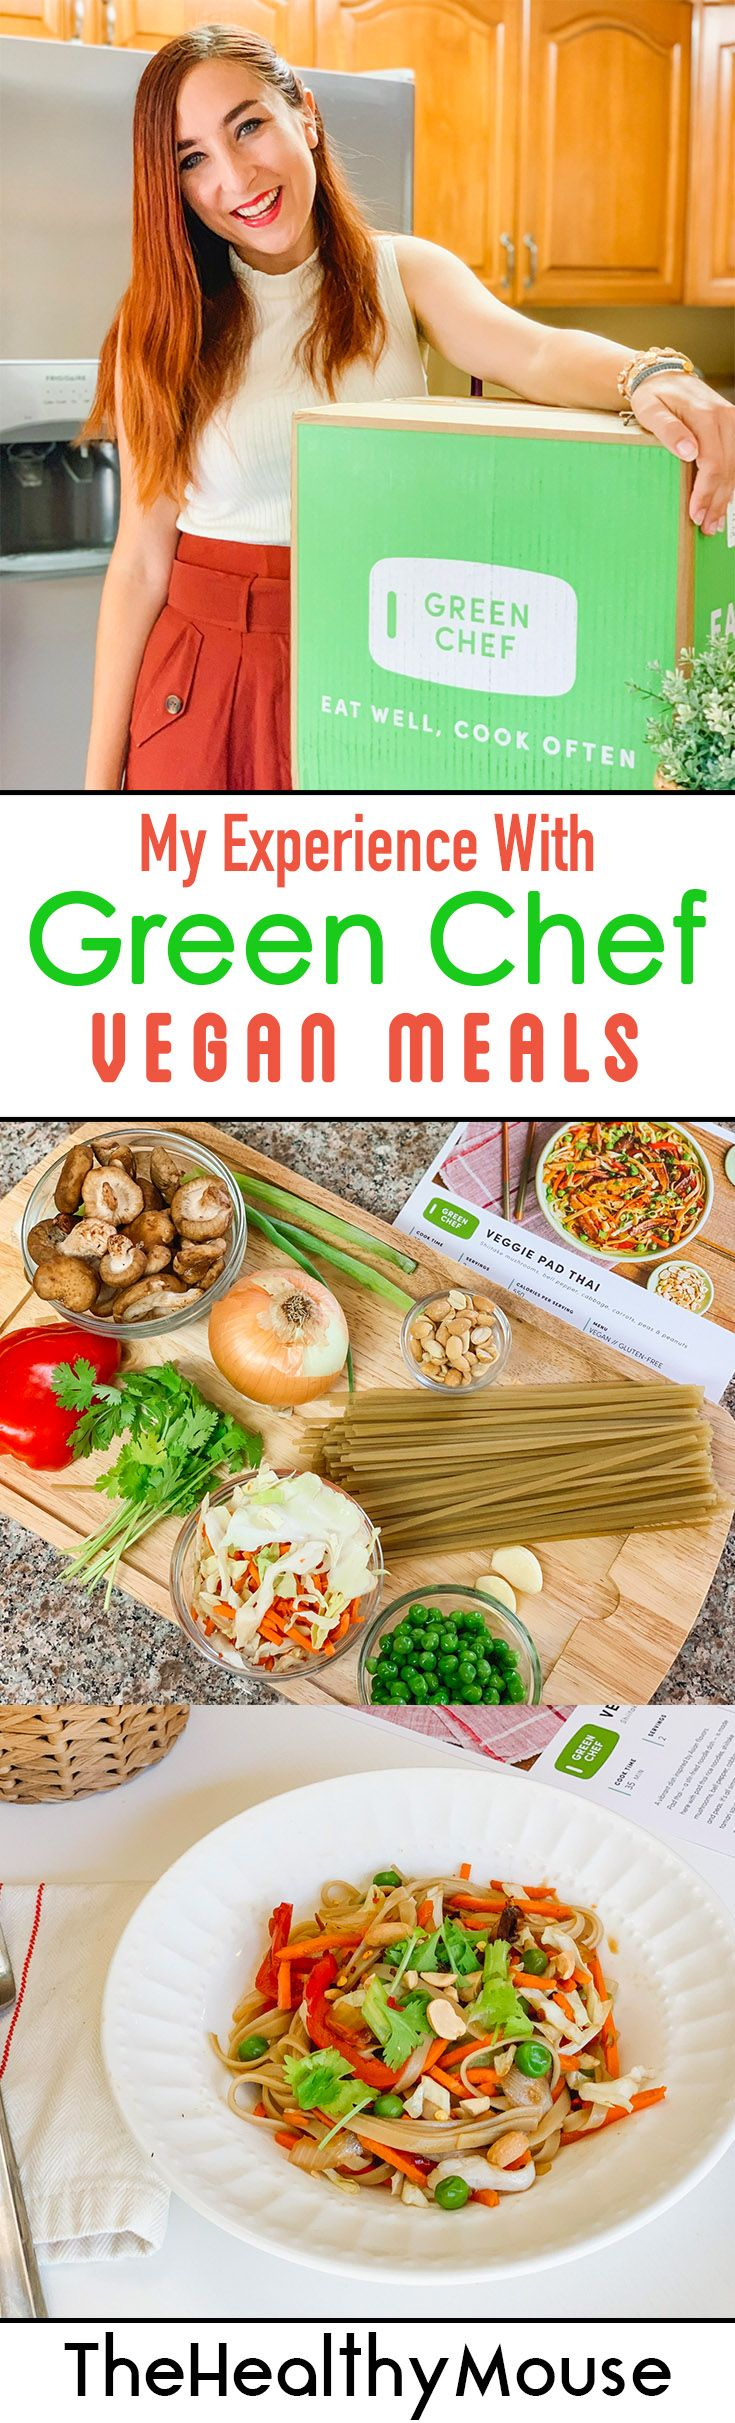 My Experience With Green Chef Vegan Meals The Healthy Mouse Vegan Recipes Green Chef Meals